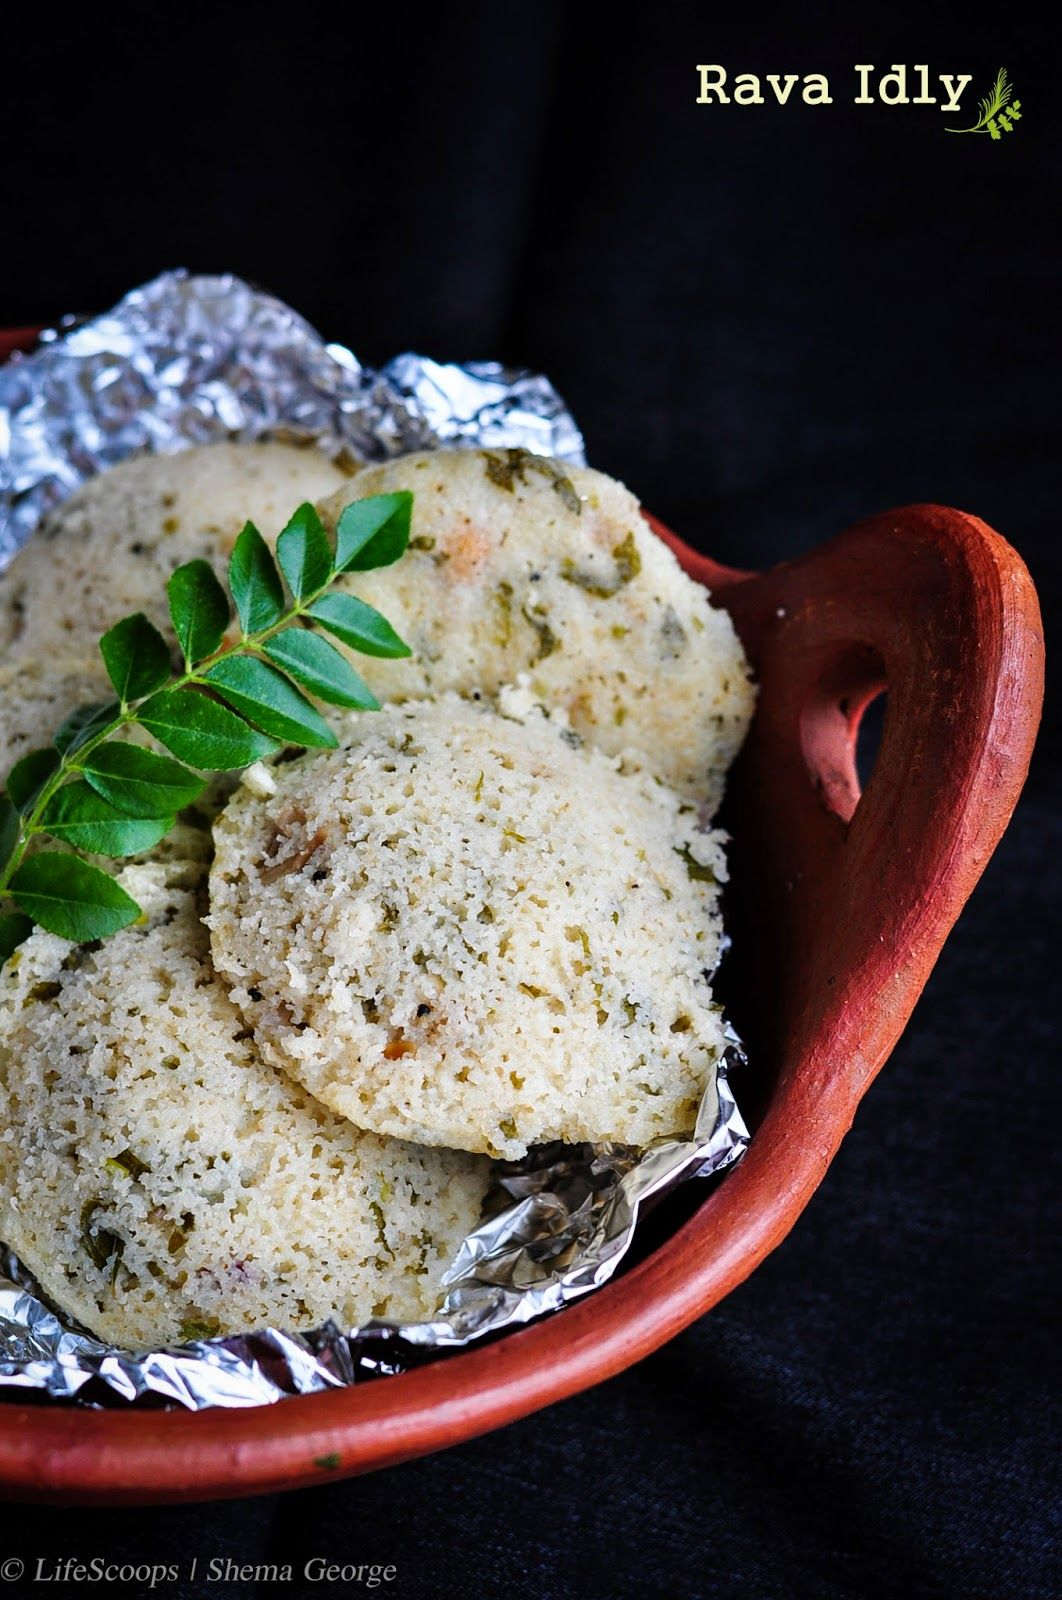 Rava idly rava idli from scratch at home homemade south indian rava idly rava idli from scratch at home homemade south indian breakfast idea rava idly with eno salt rava idli with baking soda rava idly without forumfinder Choice Image